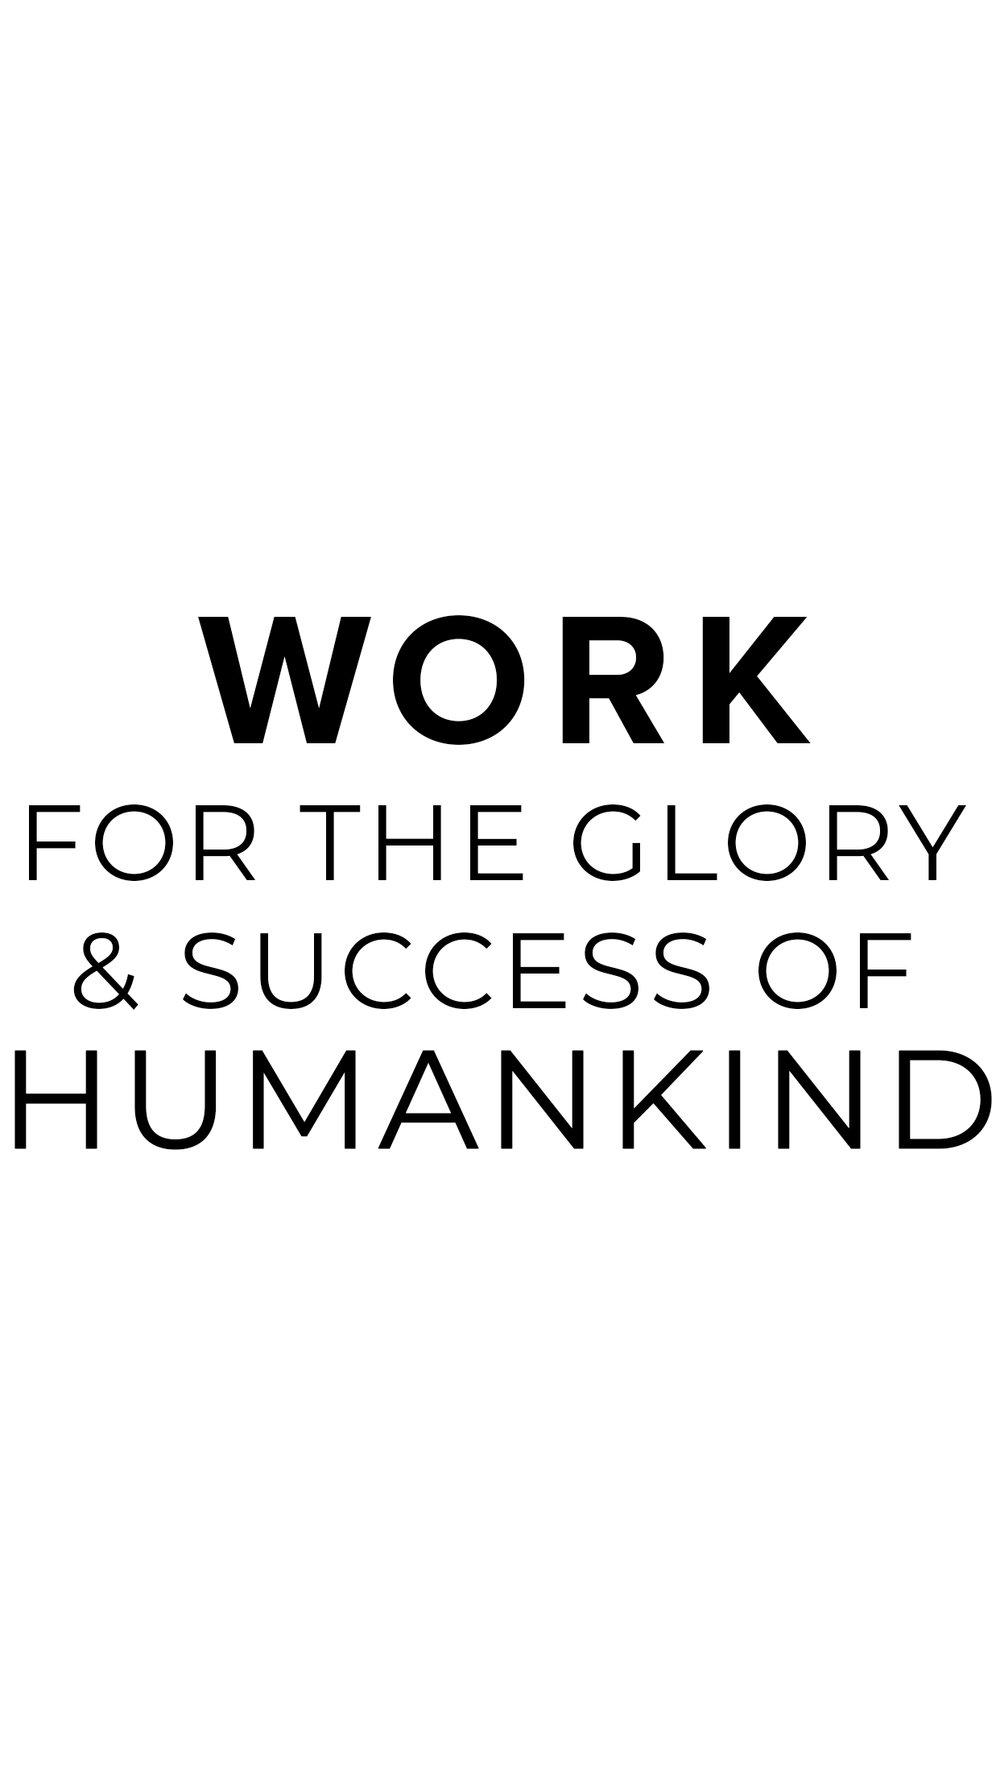 Work For The Glory & Success of Humankind